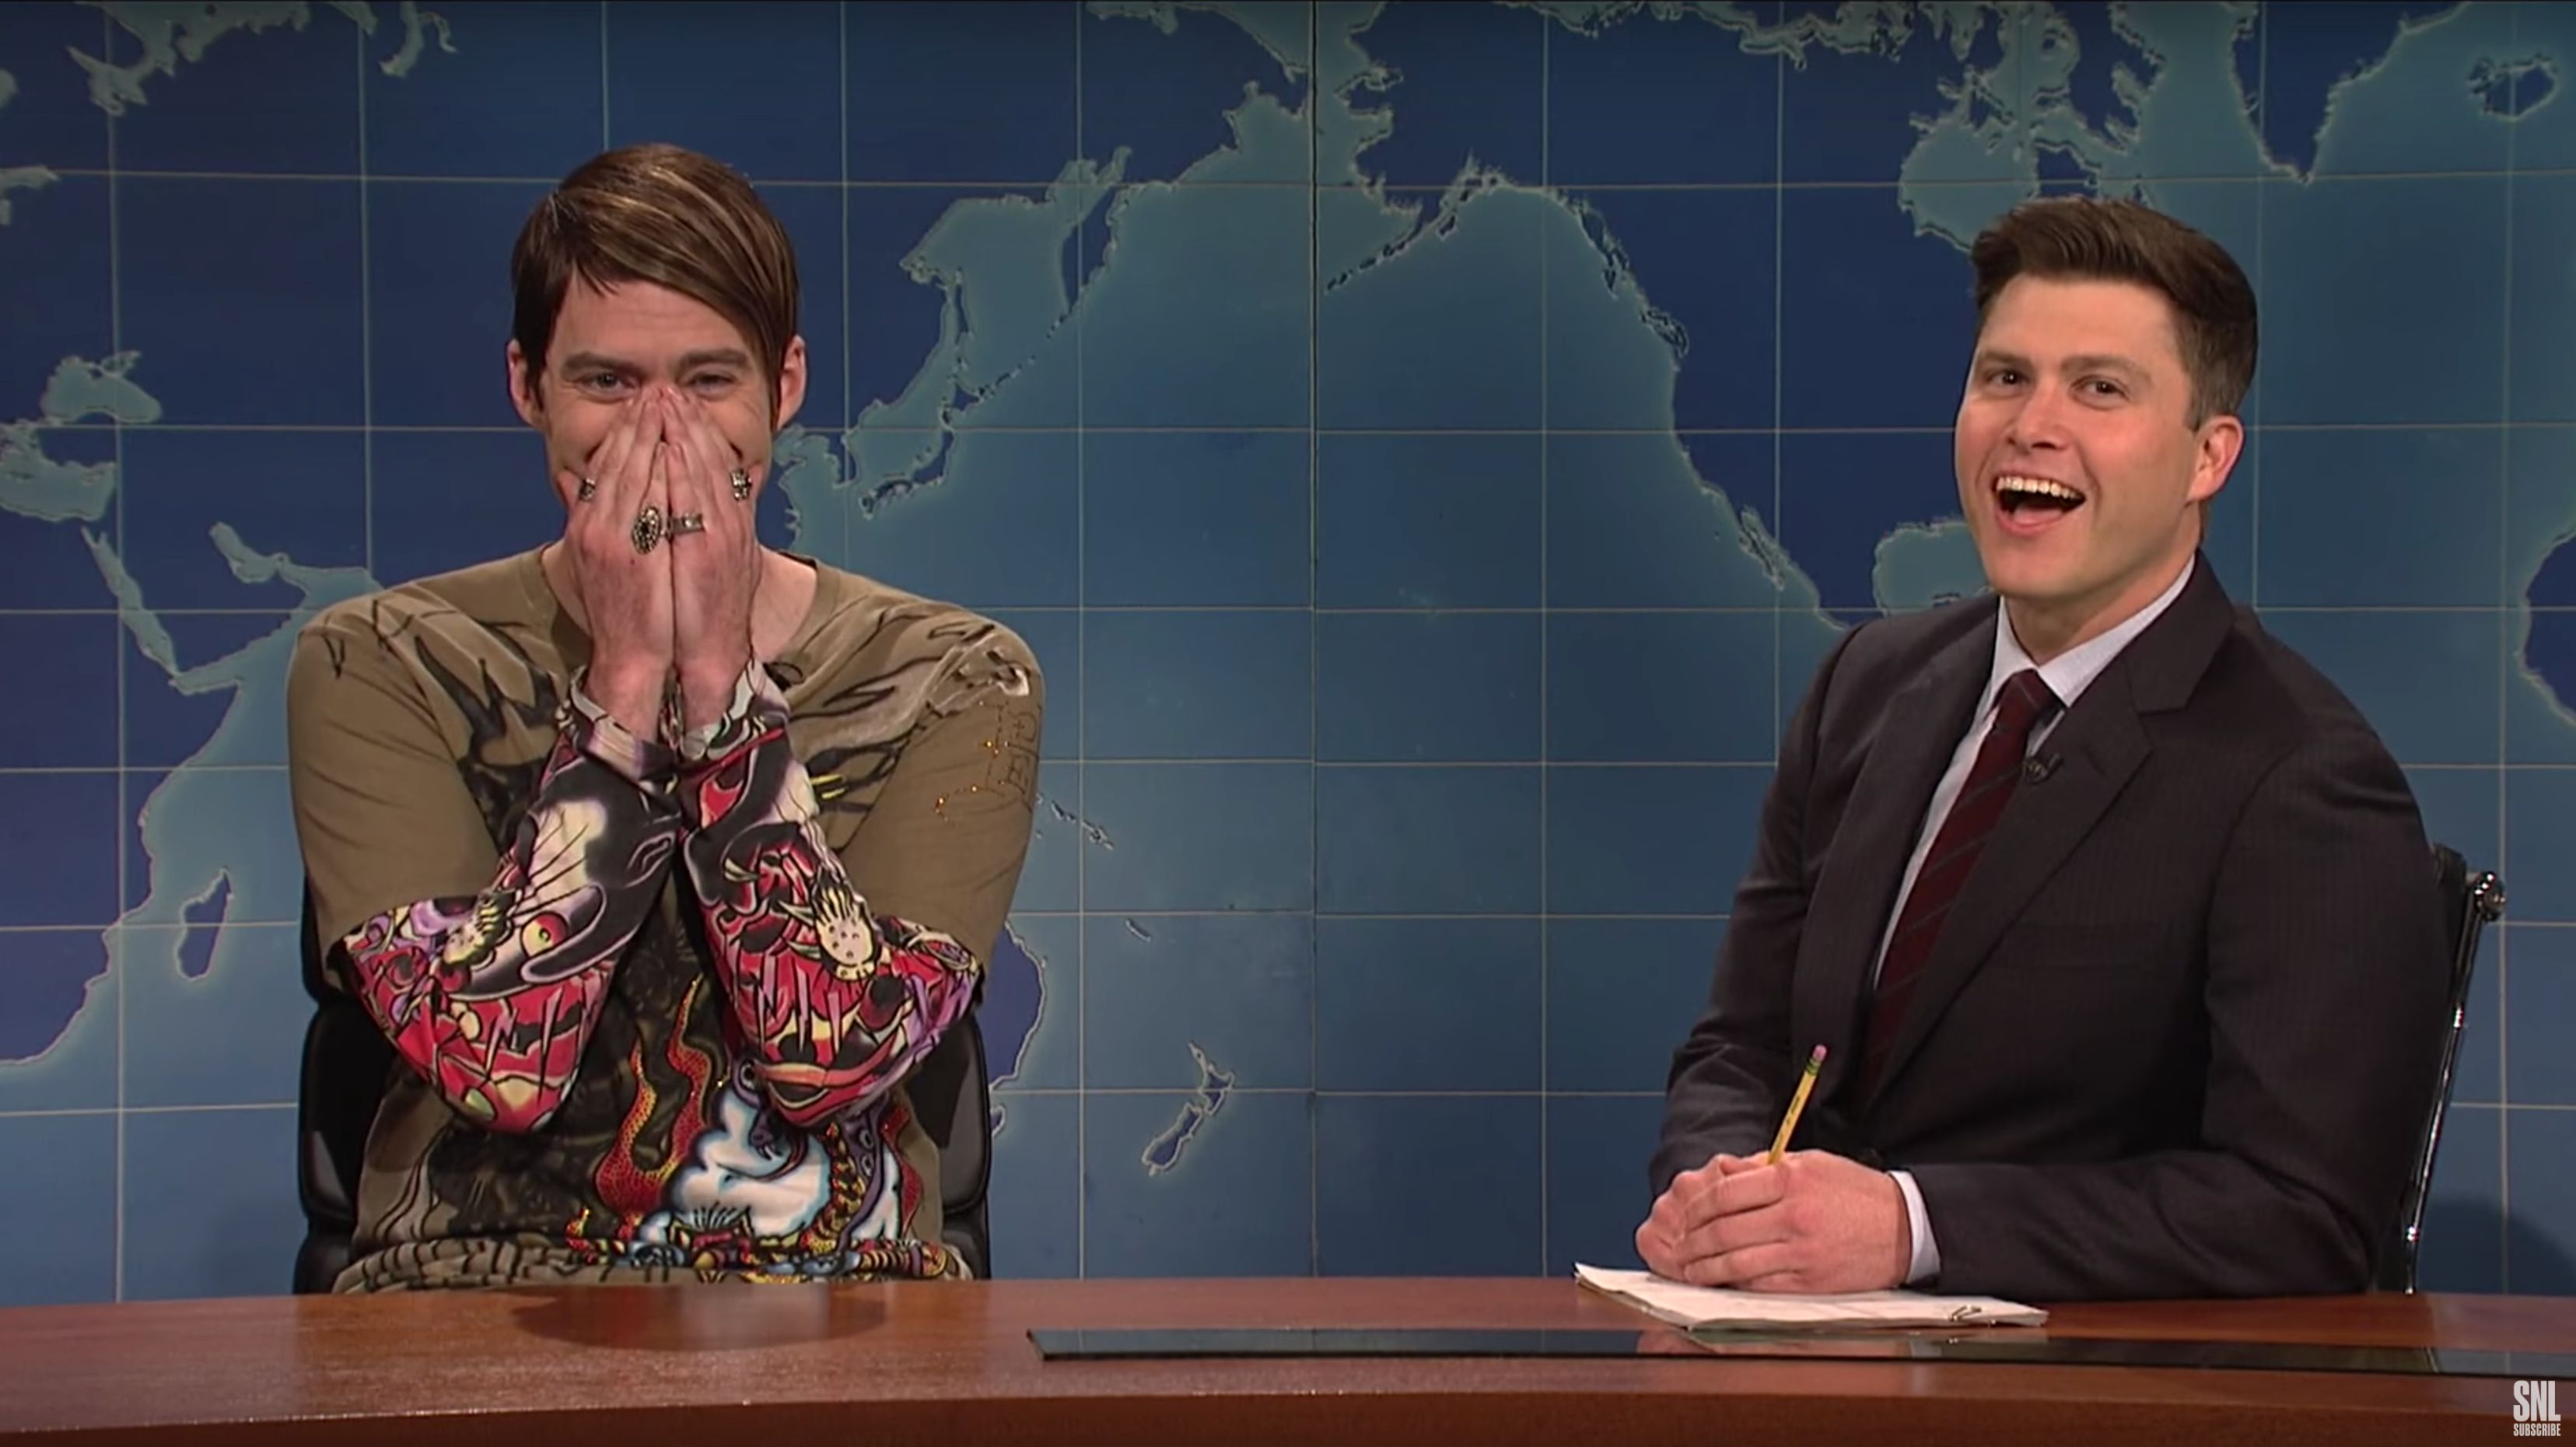 Bill Hader Loses It Playing 'Stefon' In His Return As 'SNL' Host